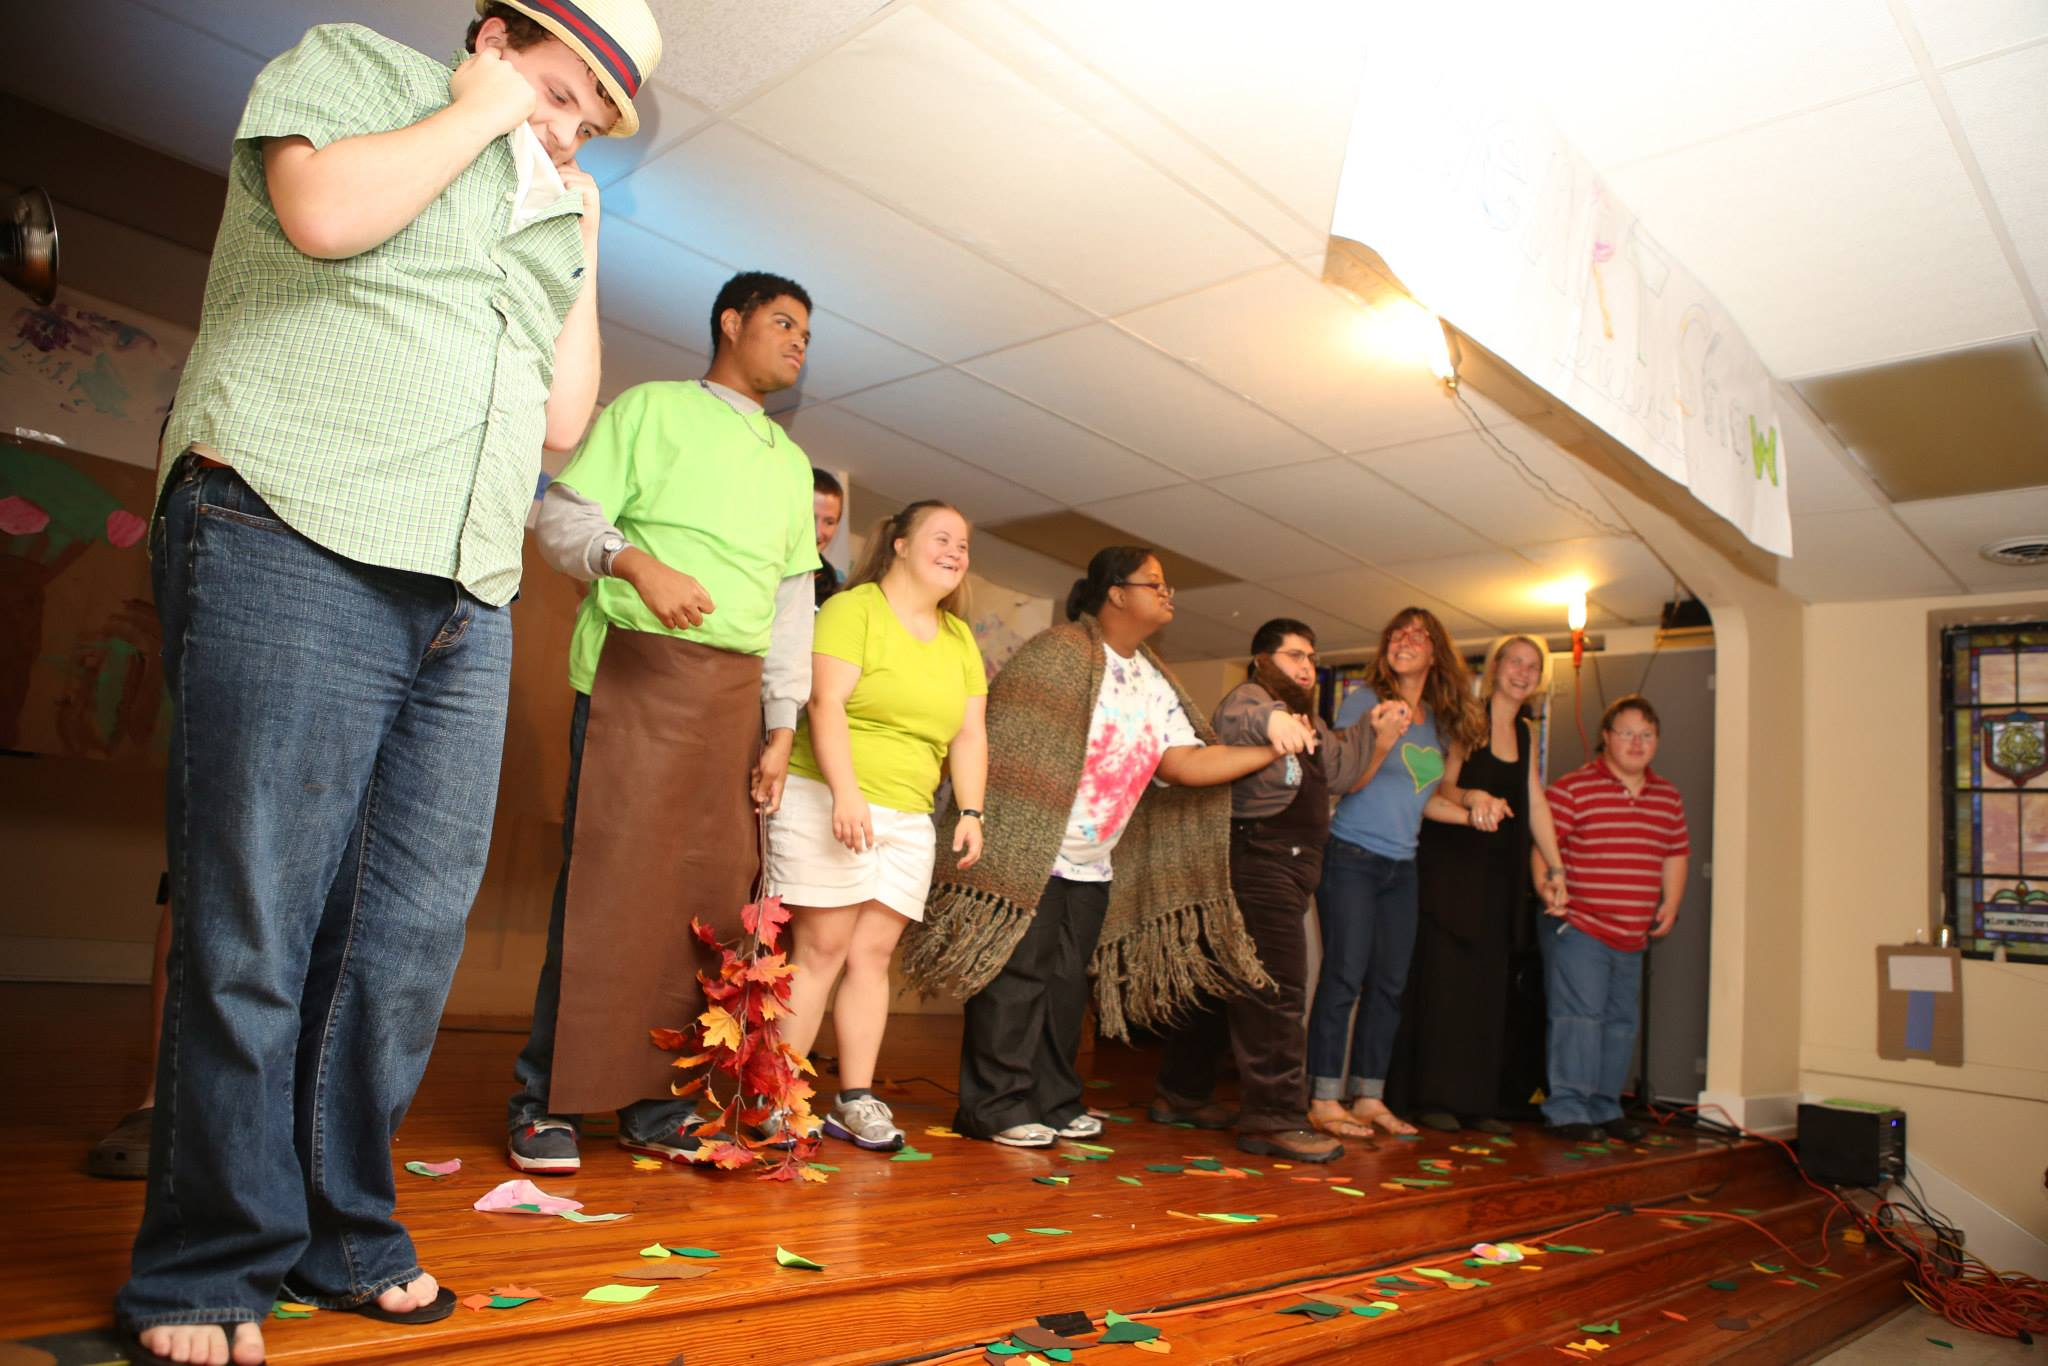 SESSION TWO: THEATRE   Actress, Tara Sweeney along with other volunteers helped HEART participants produce a playadaption of The Giving Tree.